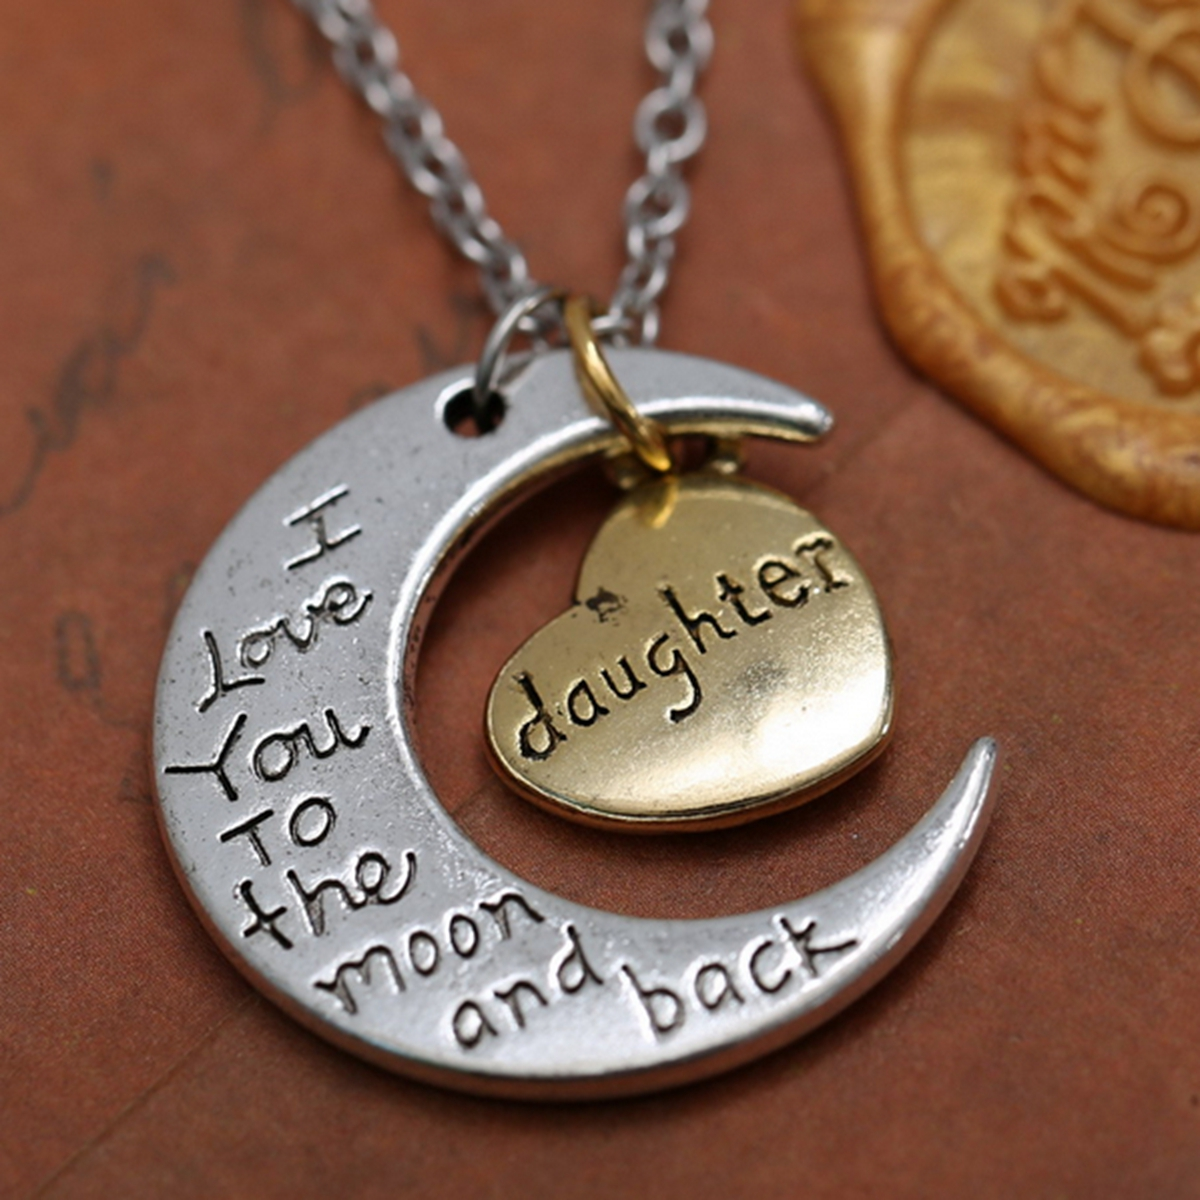 I LOVE YOU TO THE MOON AND BACK Jewelry Gift Necklace ...